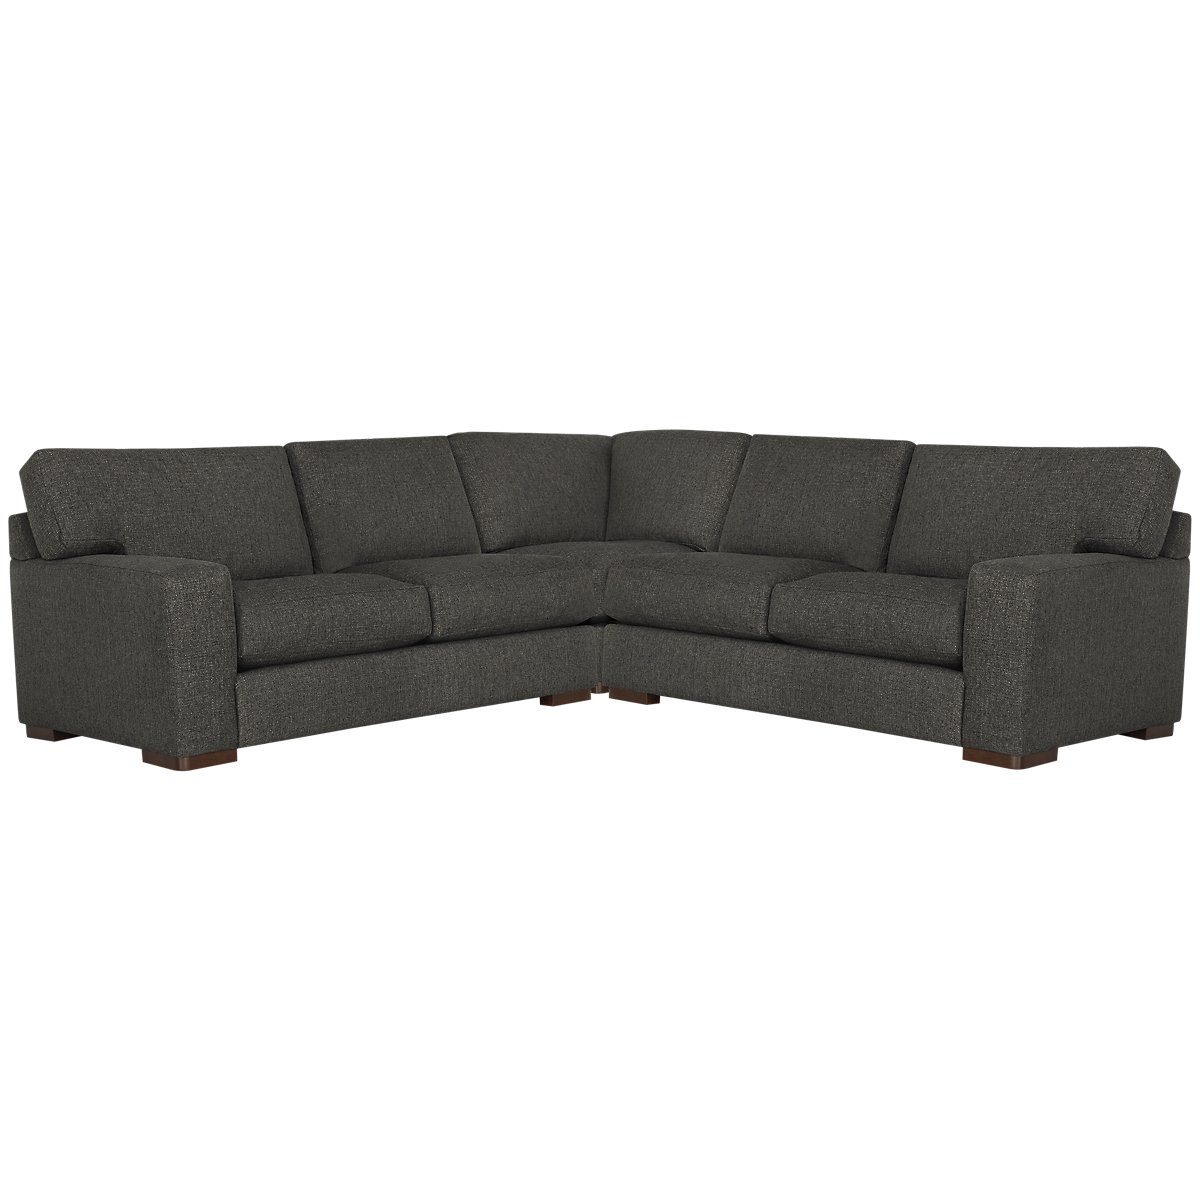 Veronica Dark Brown Fabric Small Two-Arm Sectional